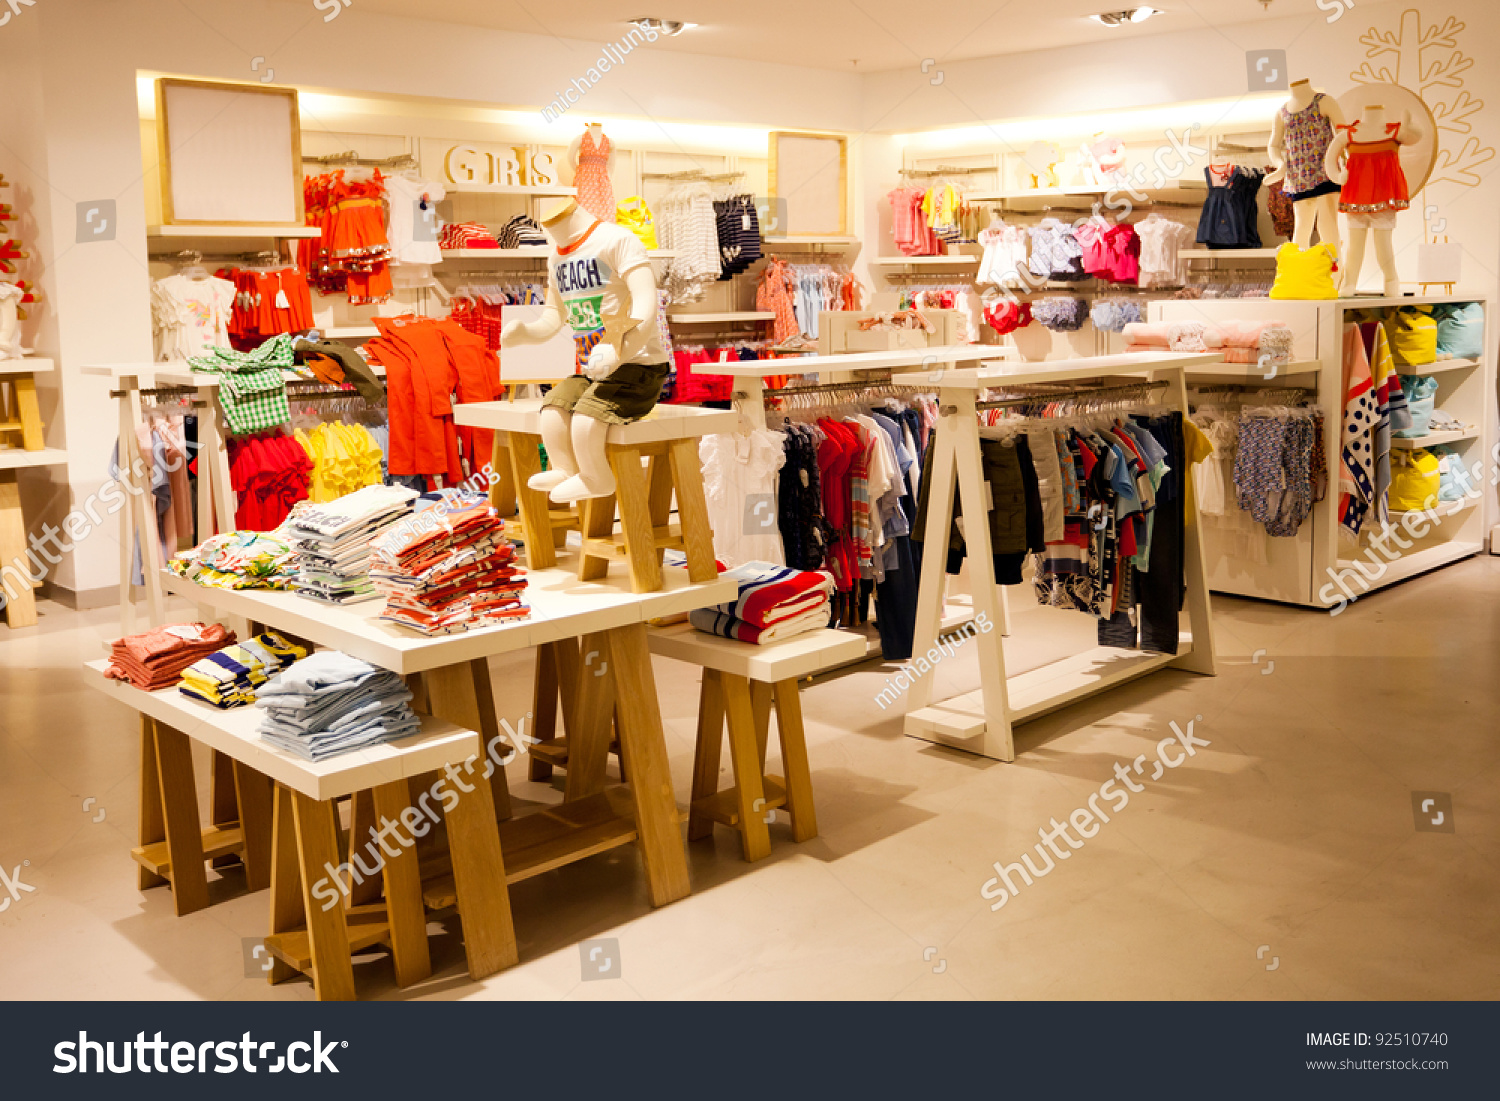 Awesome Interior View Of Childrenu0027s Clothing Store